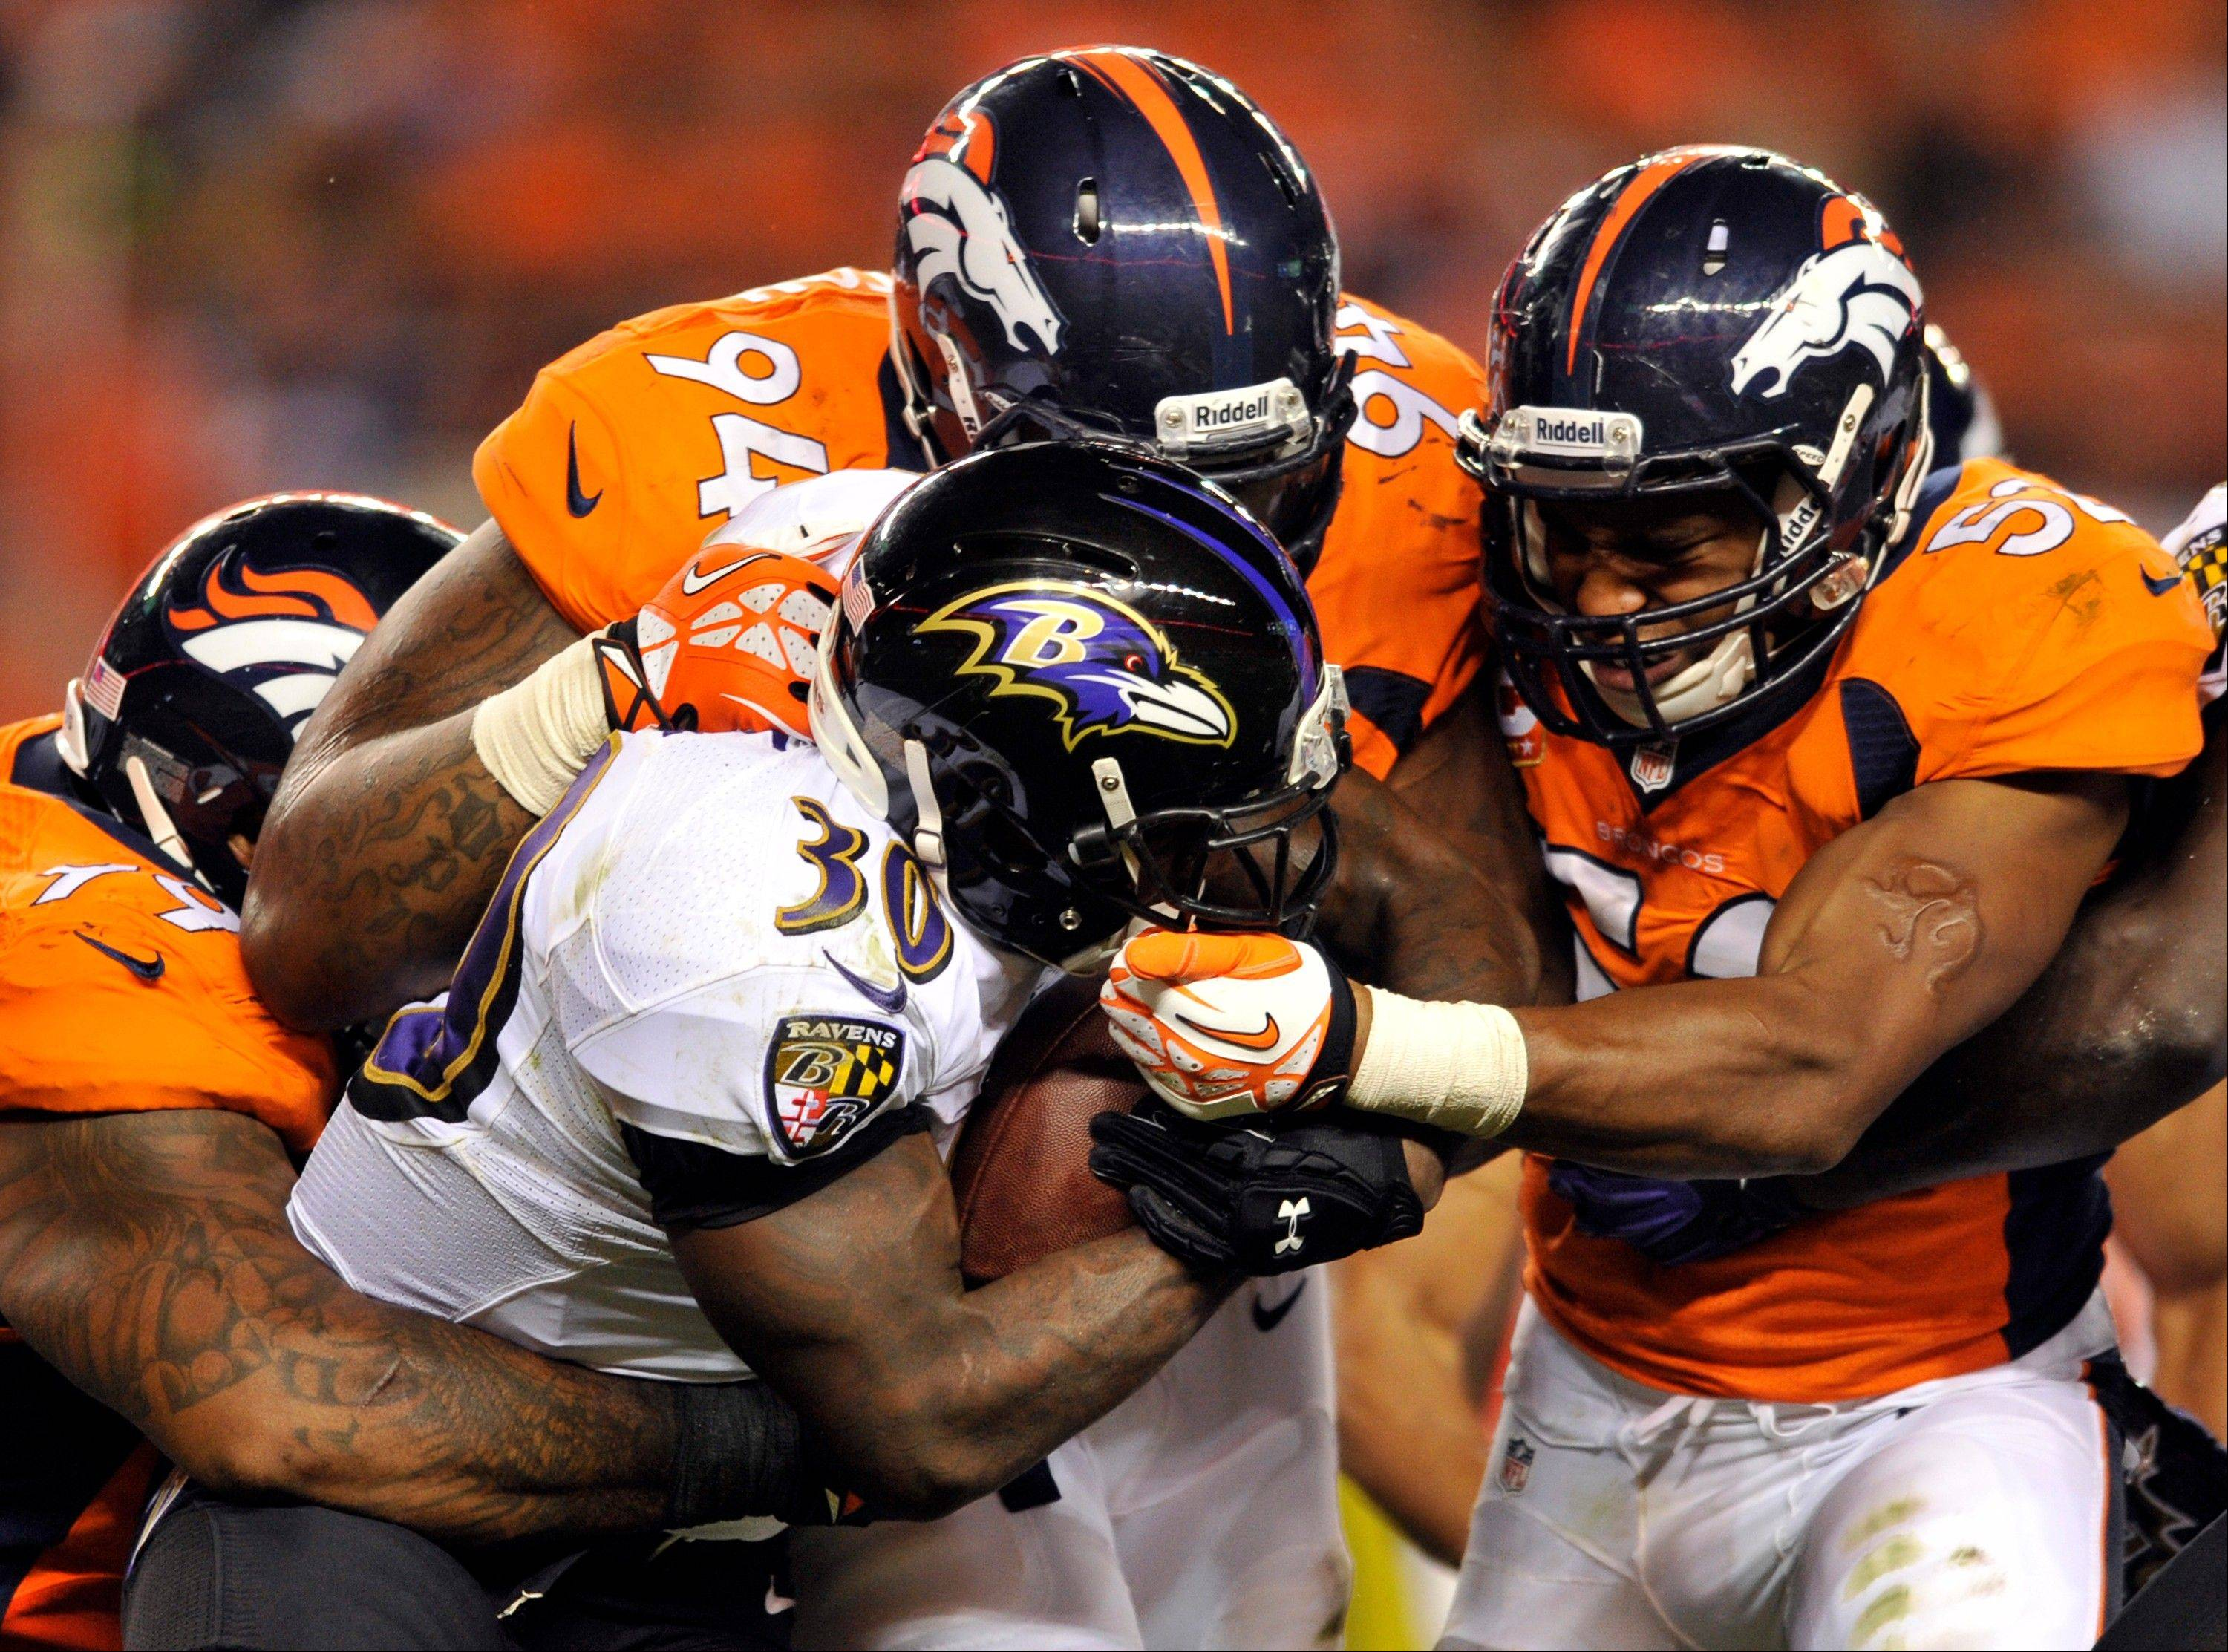 In this Sept. 25, 2013, file photo, Baltimore Ravens running back Bernard Pierce (30) is gang tackled by Denver Broncos defensive tackle Kevin Vickerson (99) , Terrance Knighton (94) and Wesley Woodyard (52) during an NFL football game, in Denver. Increasingly, teams are having trouble getting what they need on the ground on third or fourth down, with 2 or fewer yards needed for a first down or a touchdown. And increasingly, they�re trying to pass for those short gains.